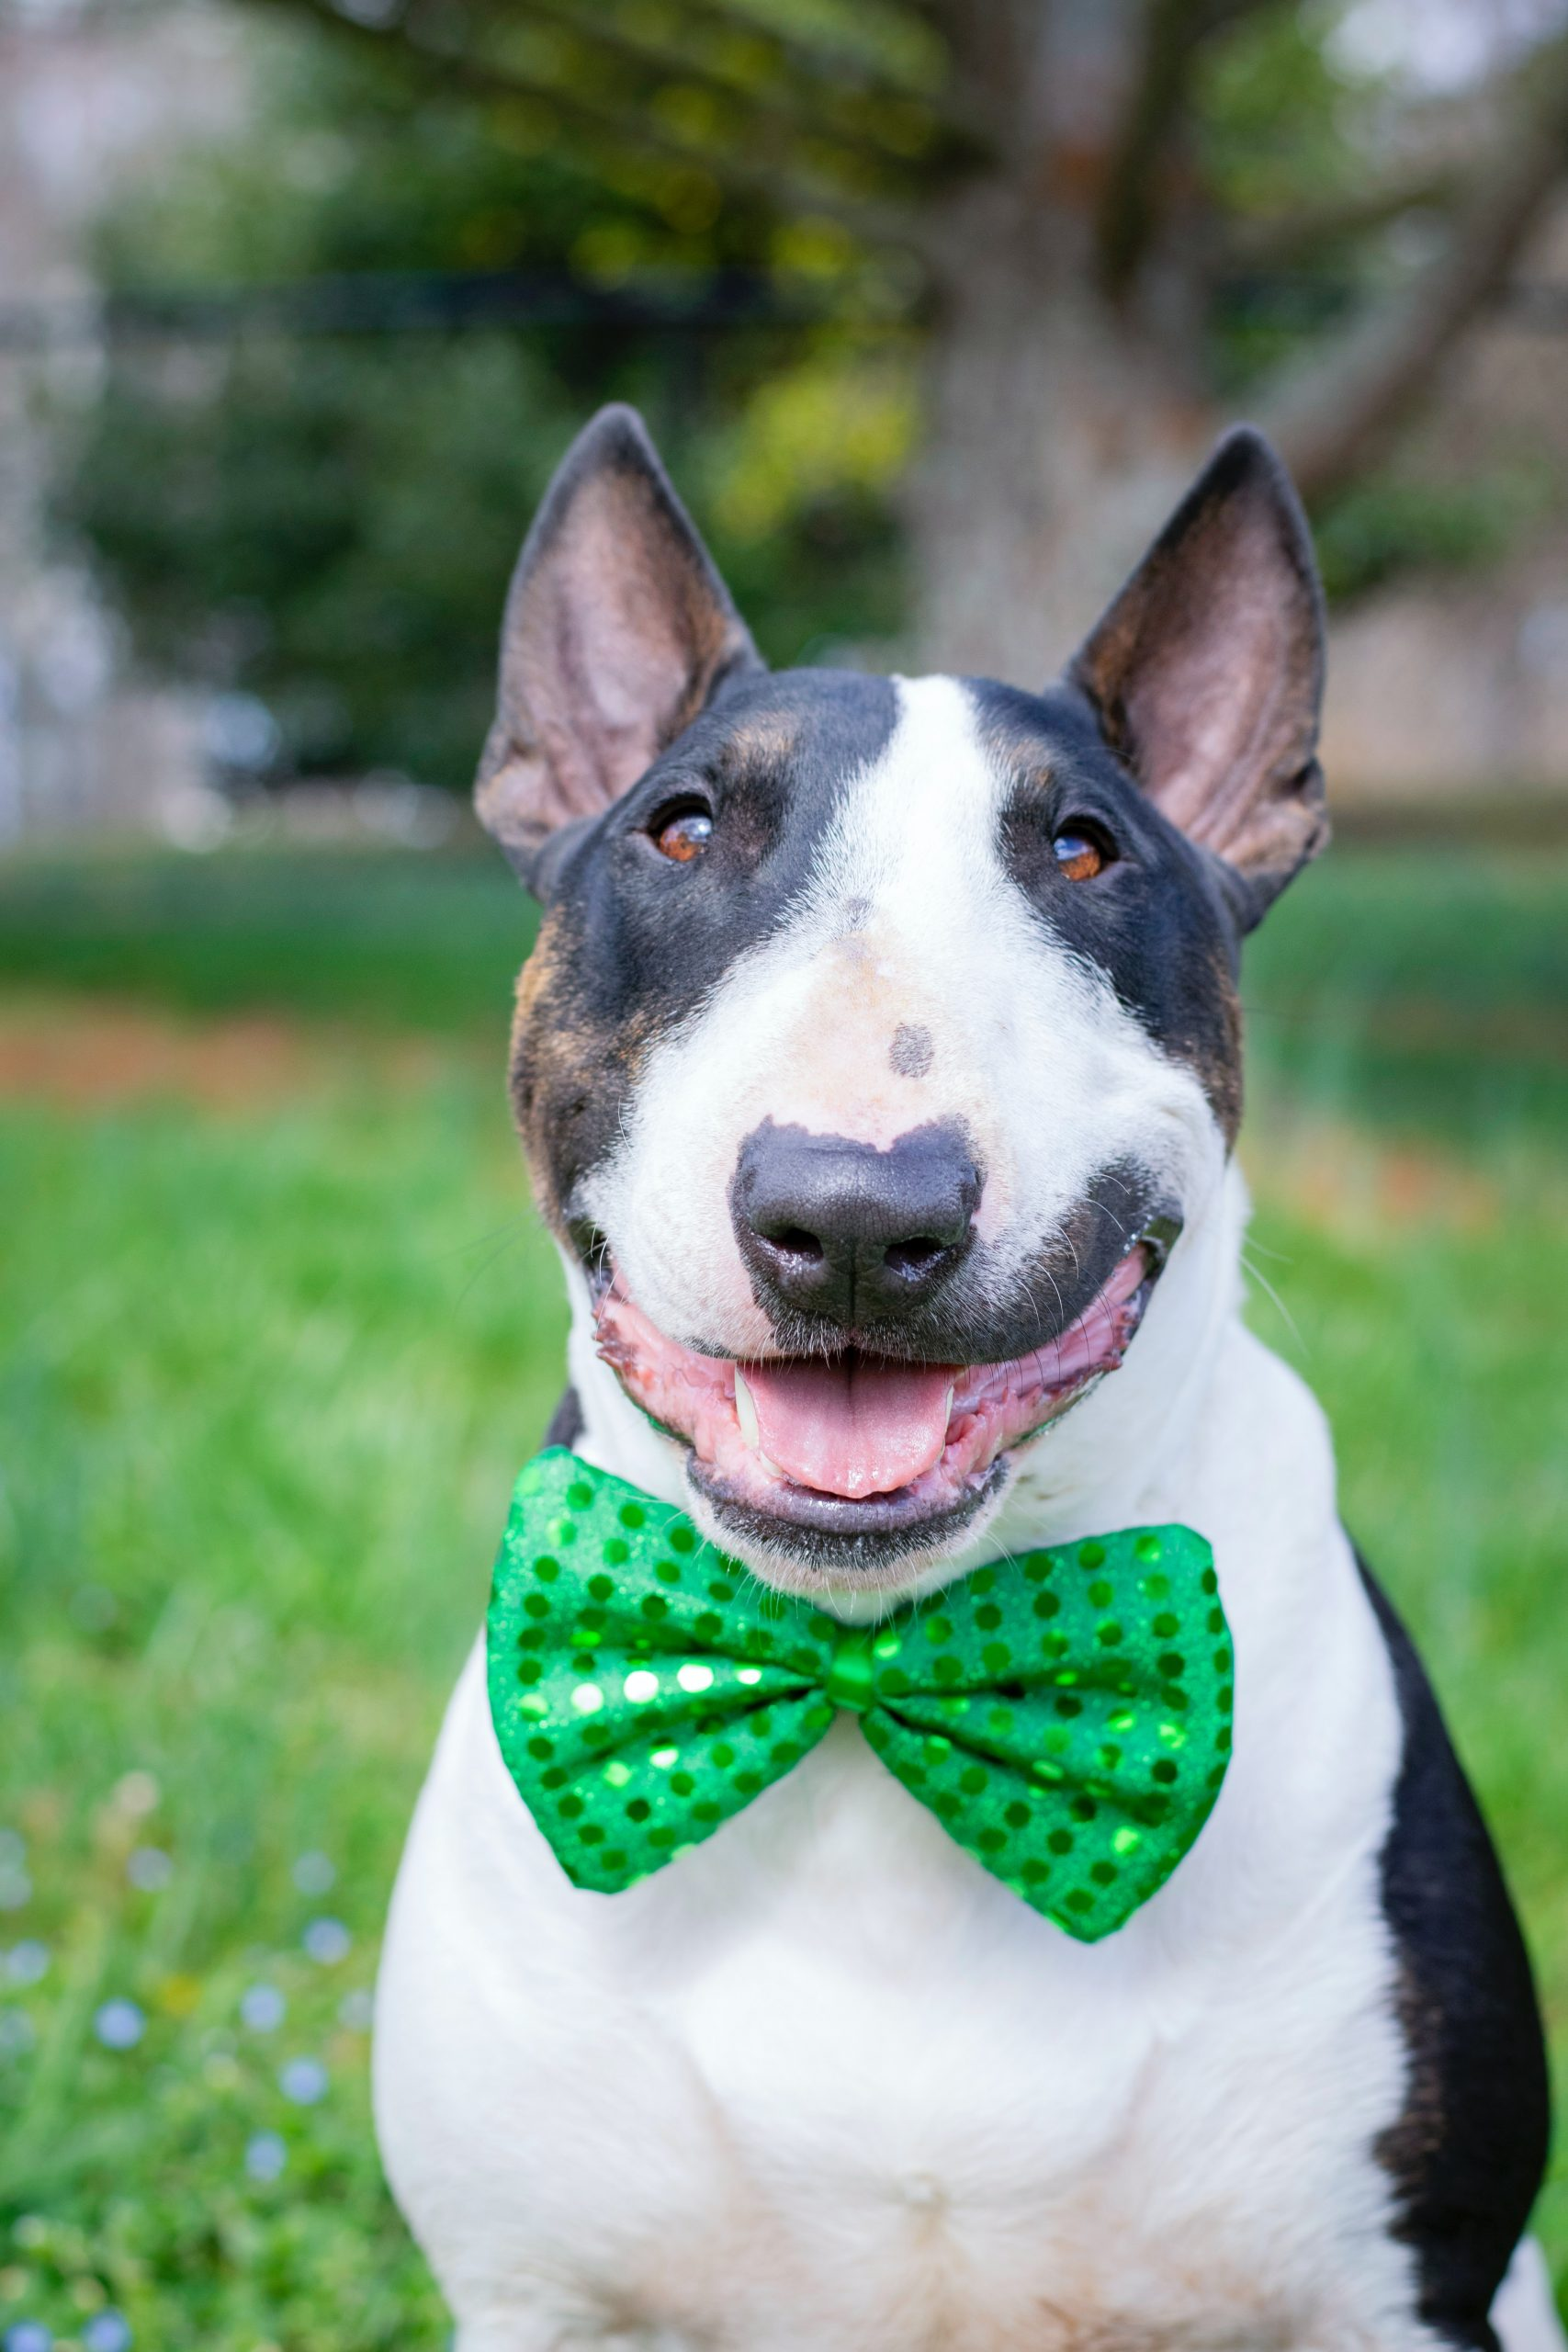 Celebrate St. Patrick's Day with your lucky dog!